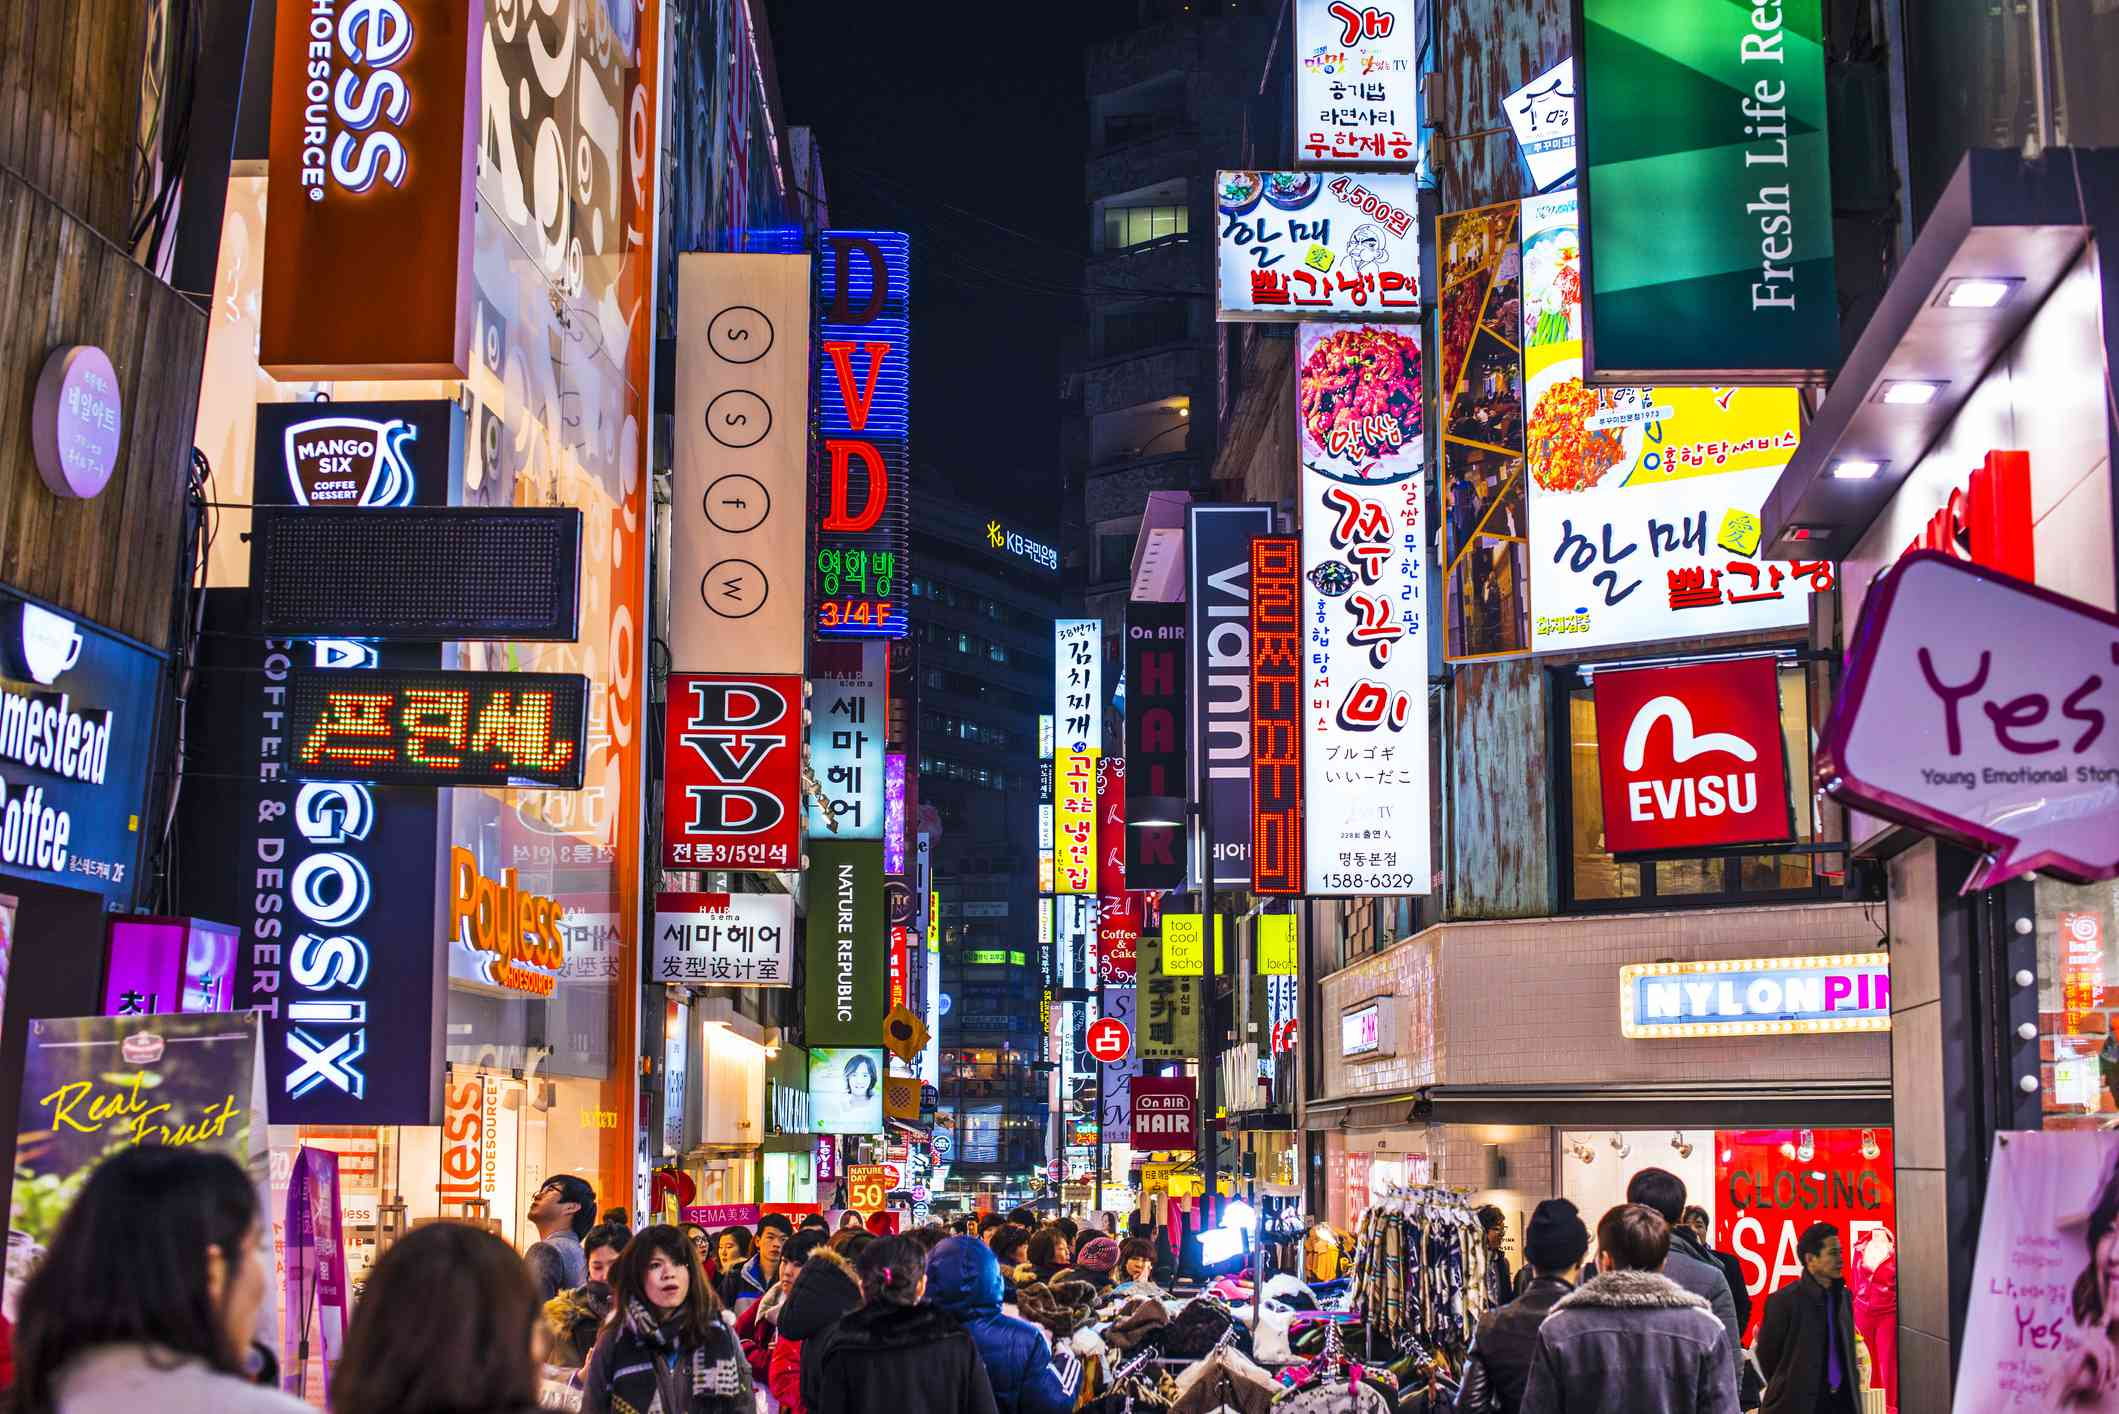 corwd of people walking on a street in seoul at night with colorful signs